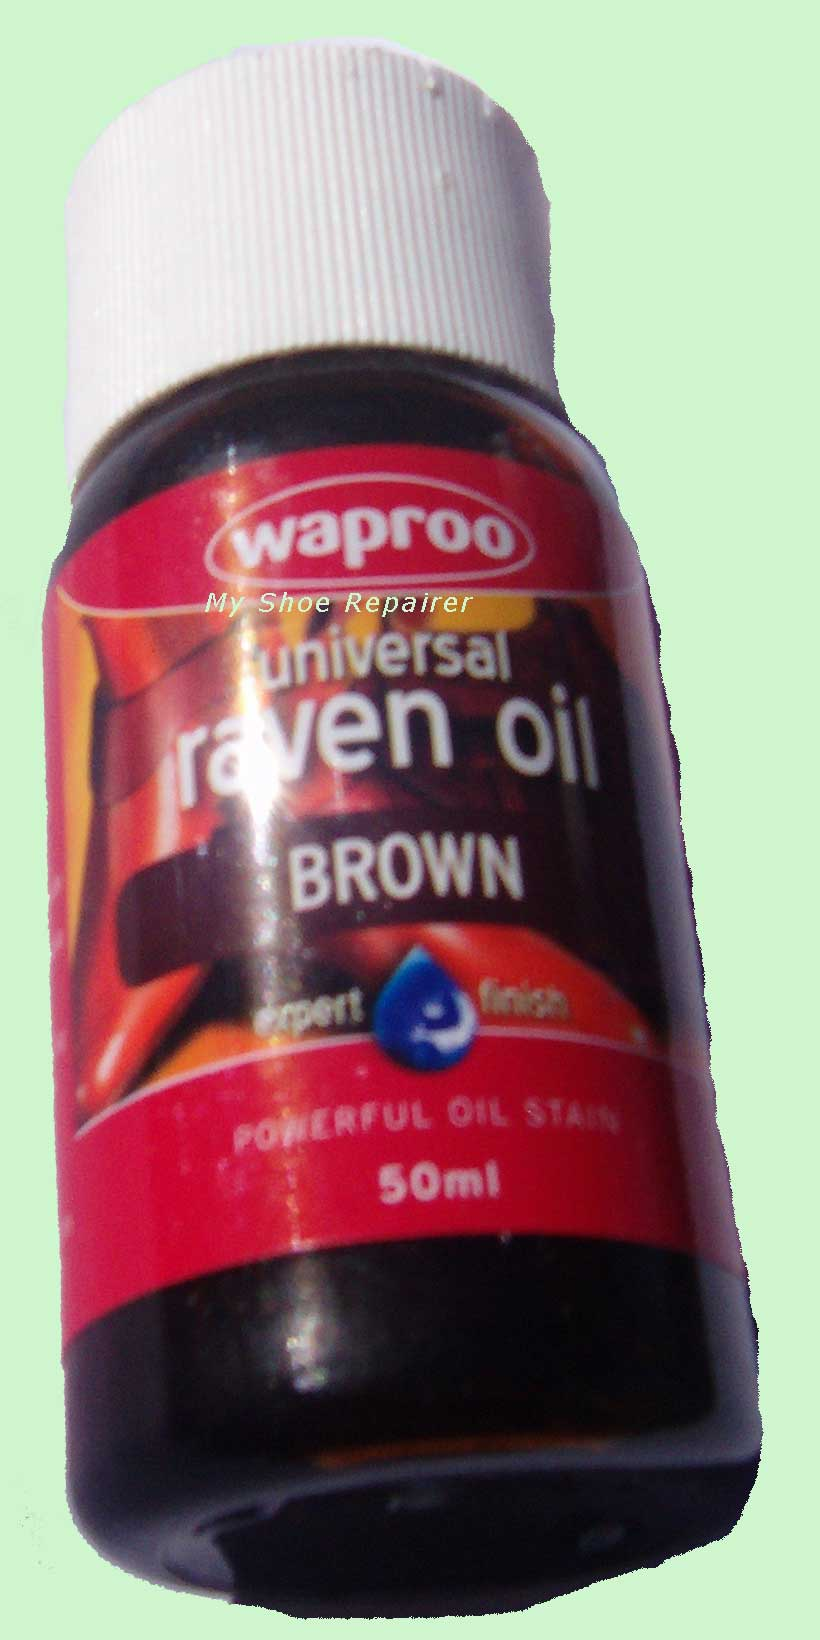 Raven Oil Brown